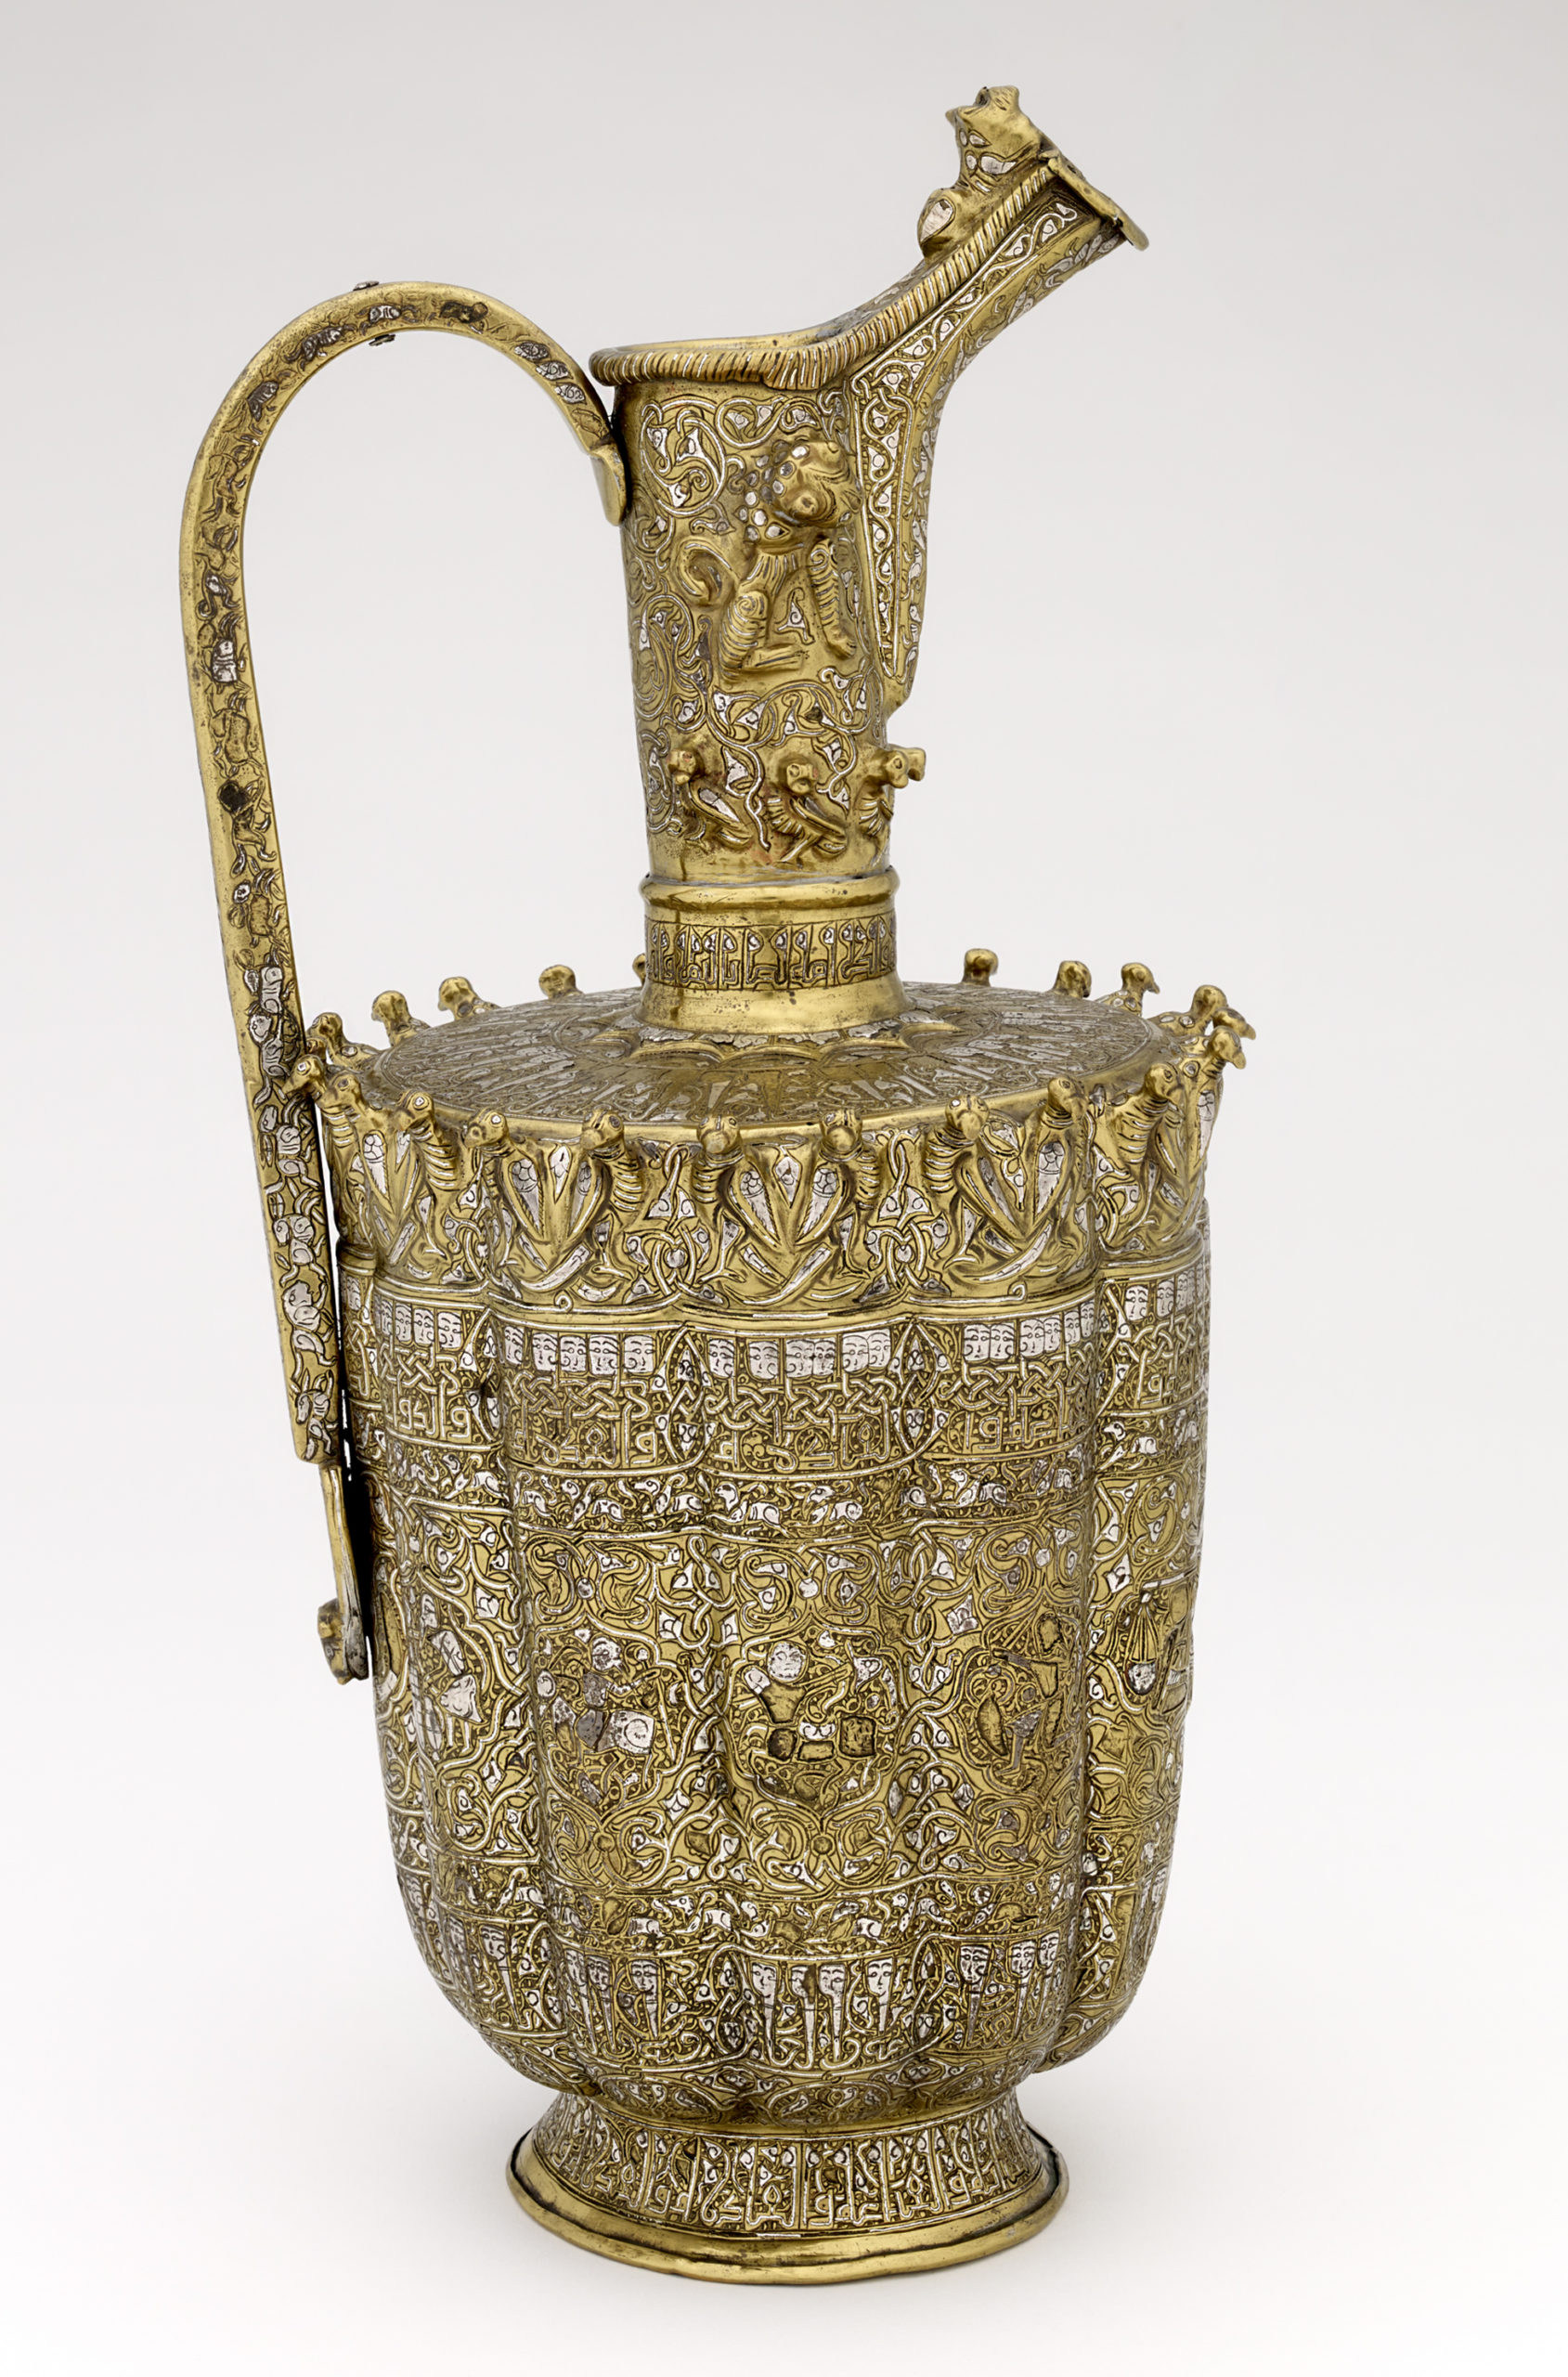 A photograph of a brass ewer, inlaid with silver decoration. The ewer has a large spout which is finely decorated with plant-inspired motifs, the body also features similar decoration. Small birds decorate the rim of the ewer.